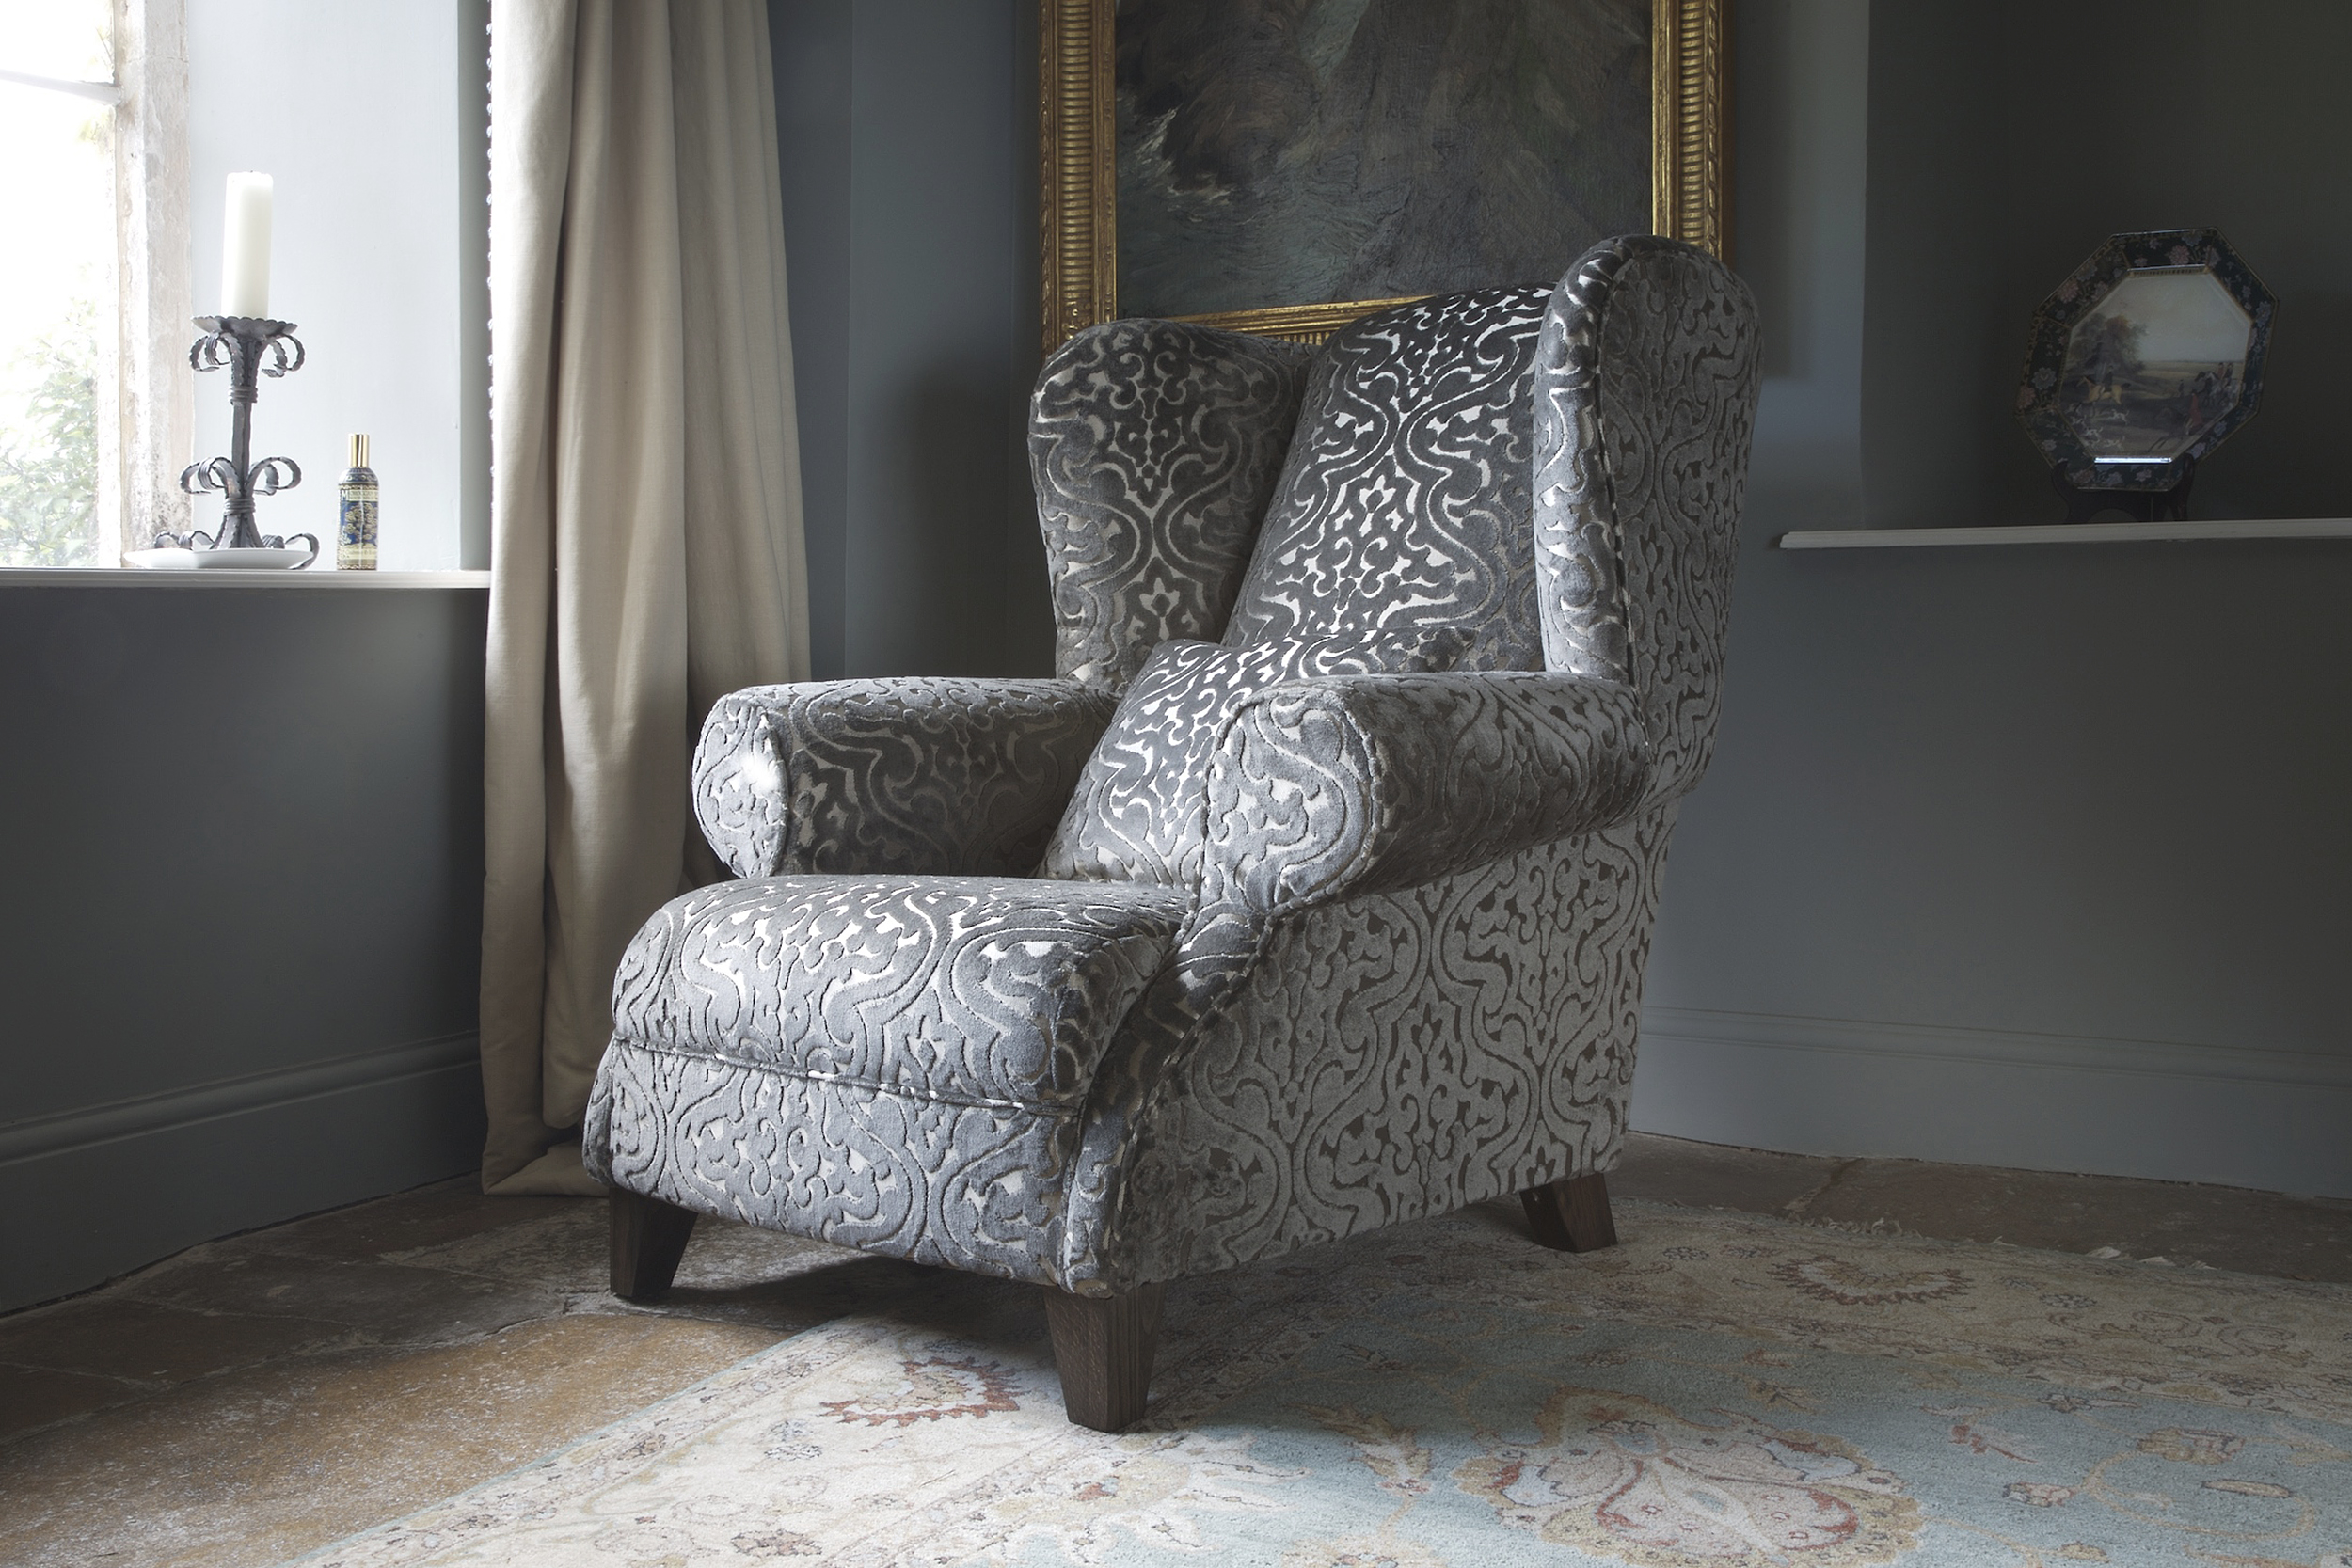 Kineton chair, Tamarisk Designs